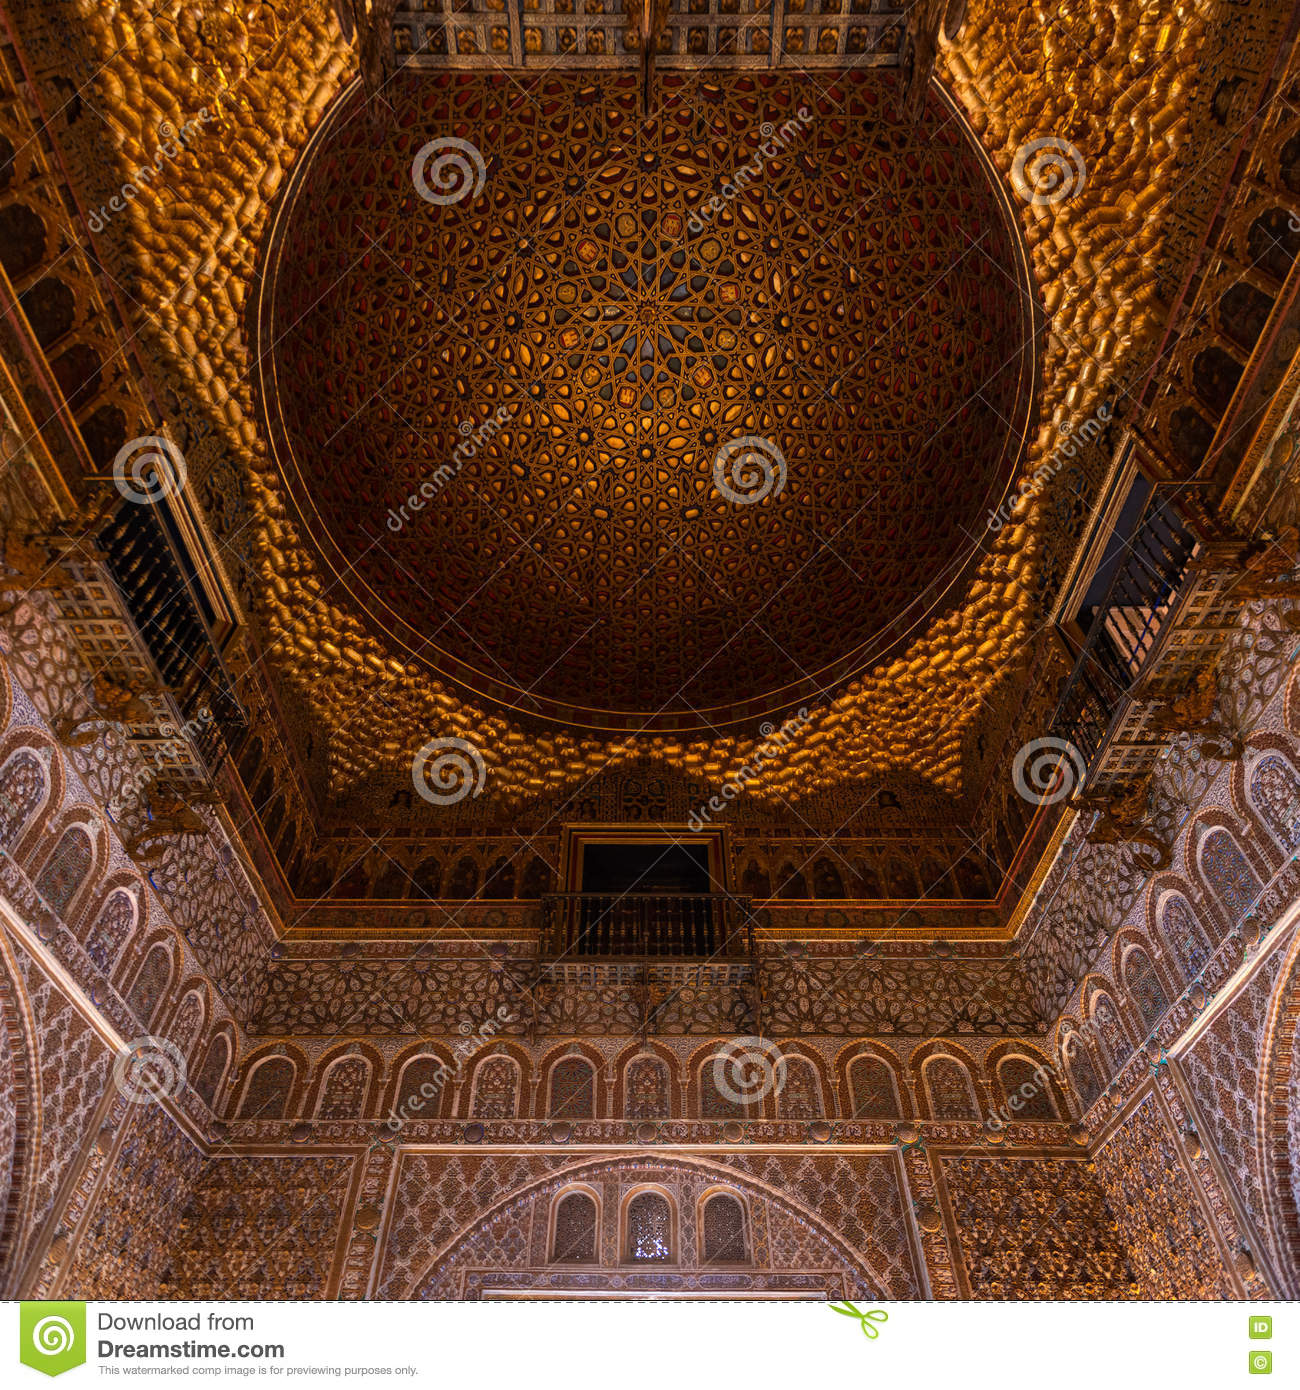 Dome In The Real Alcazar In Seville Stock Photo Image